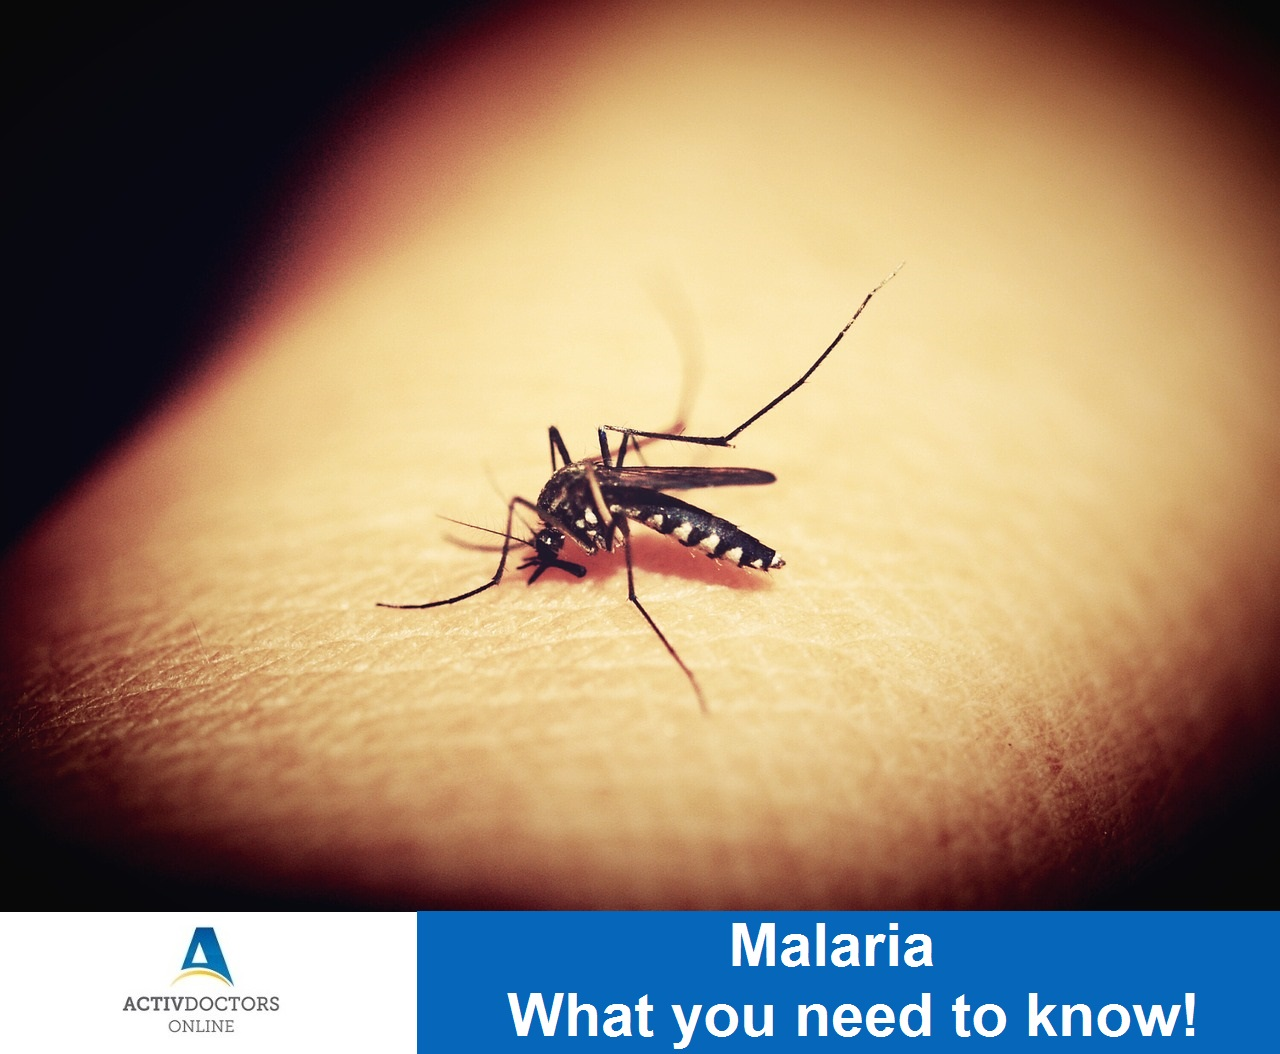 Malaria – What you need to know!